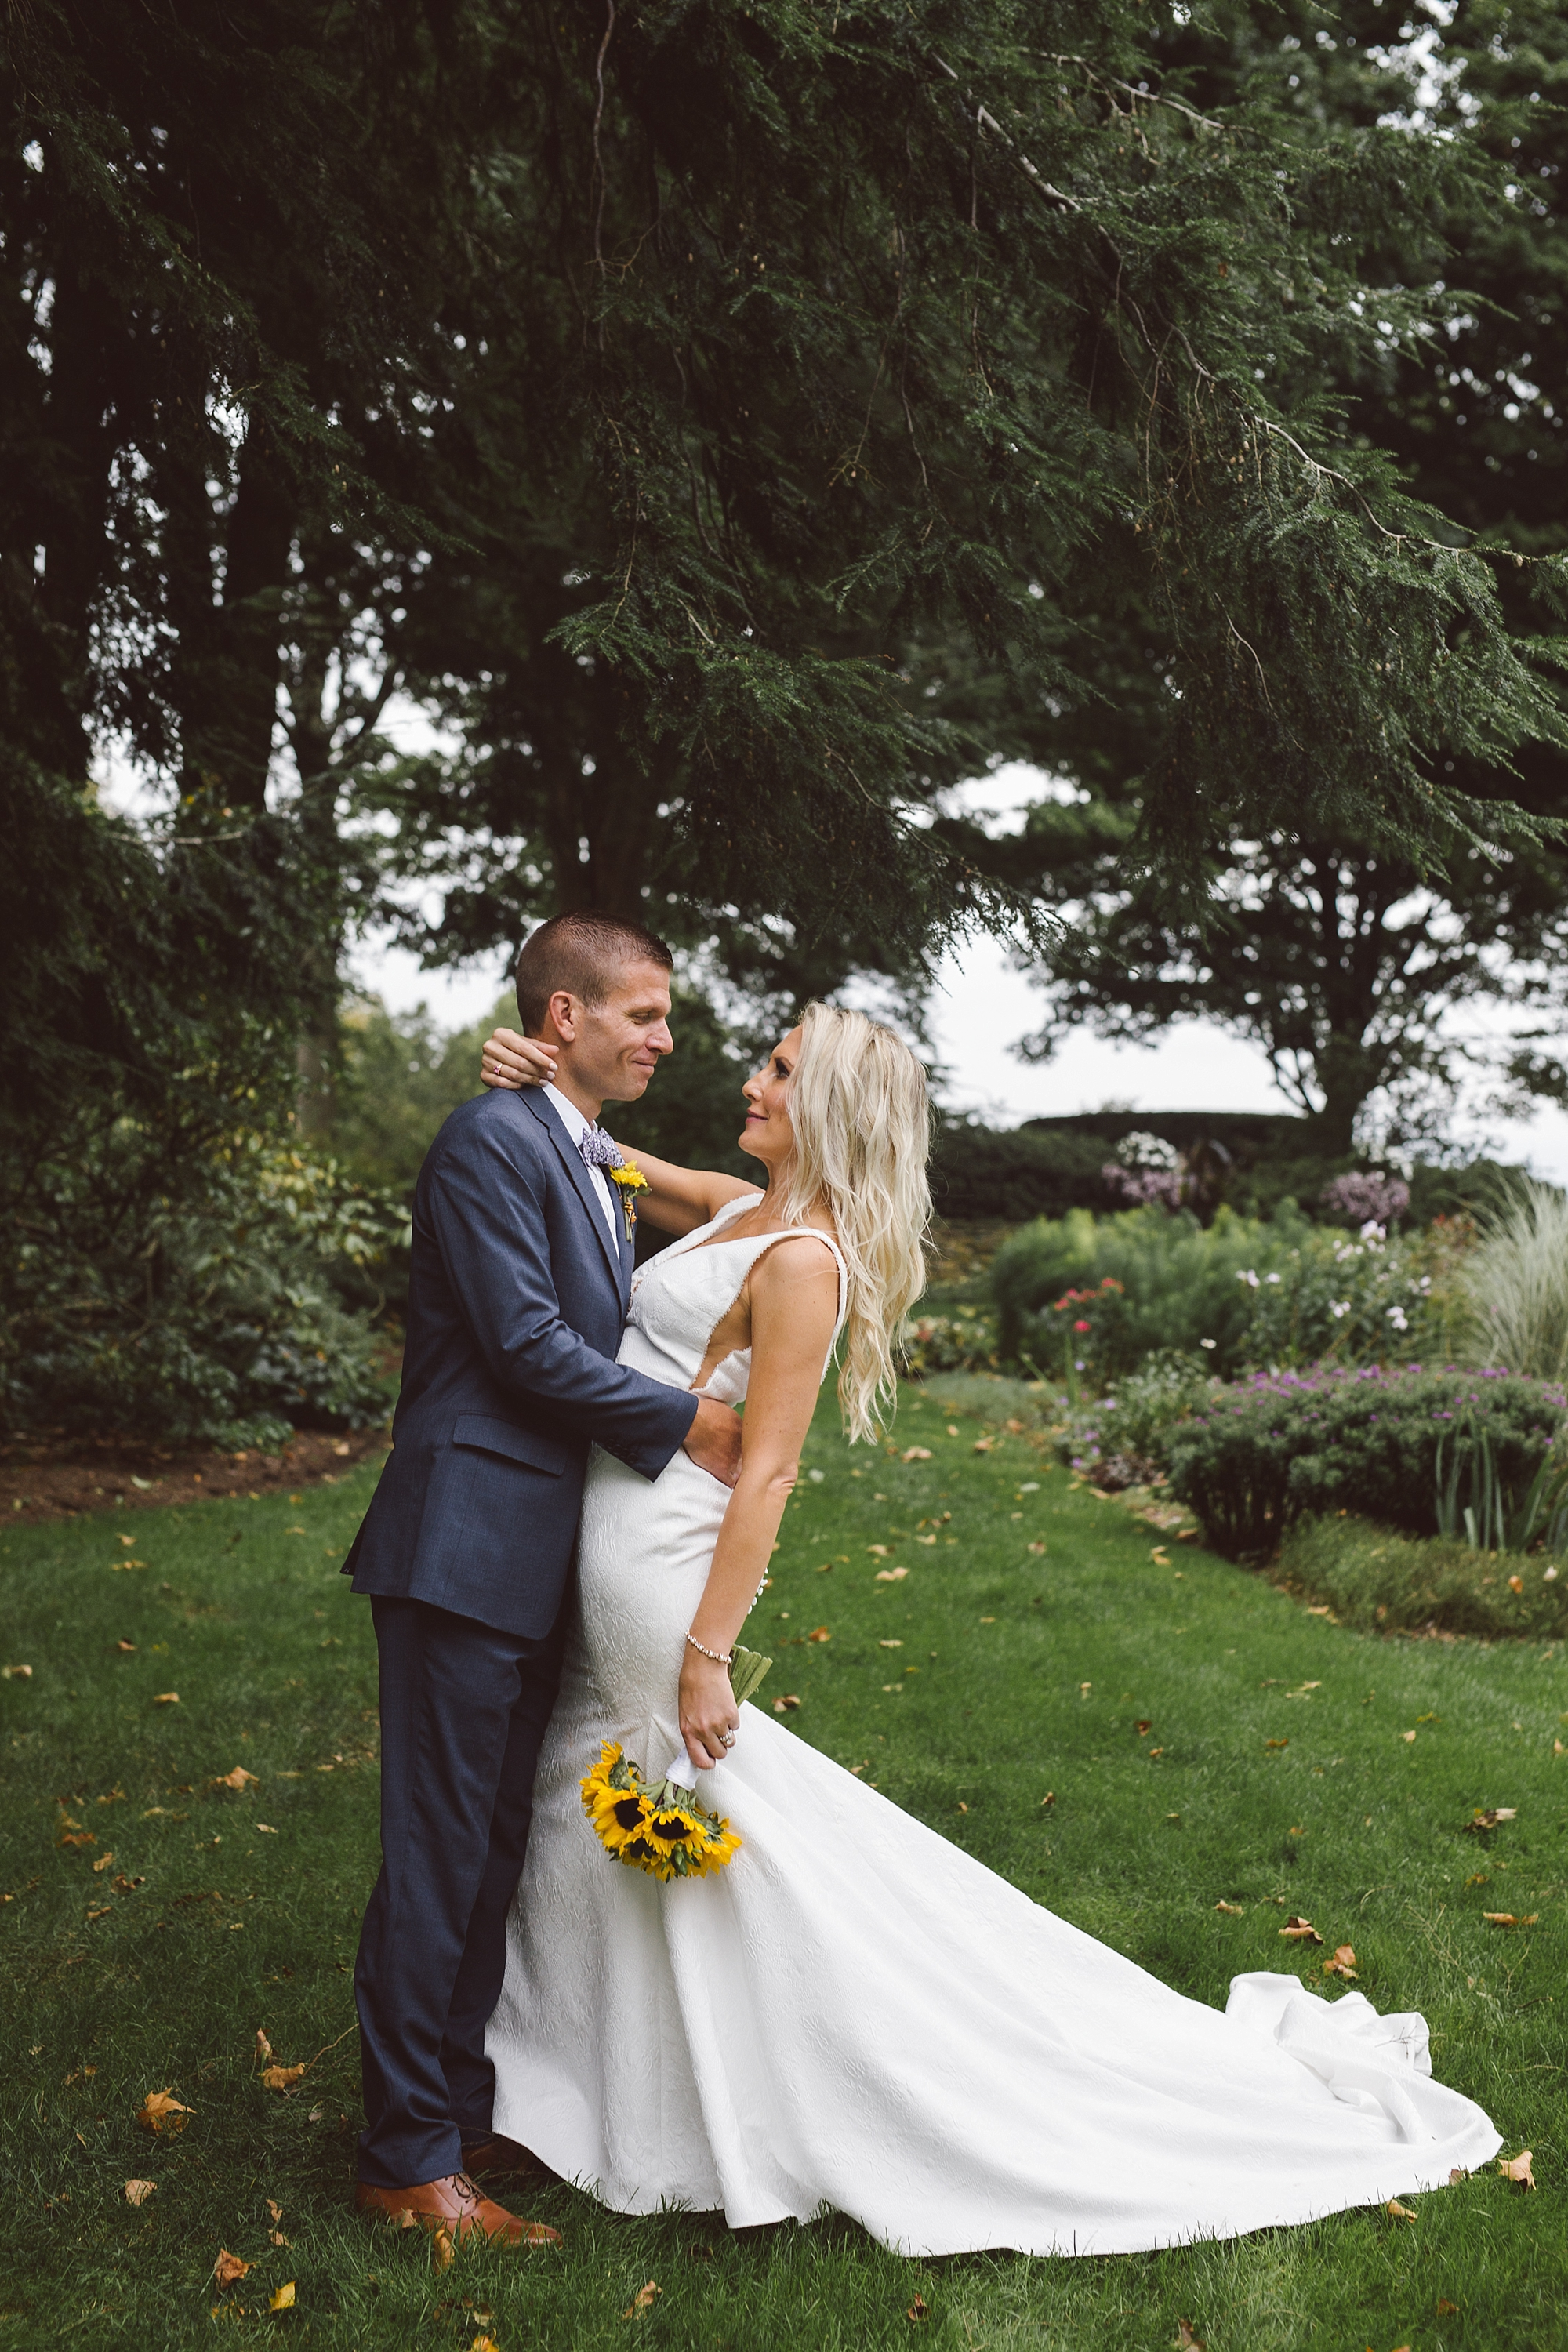 Druemore_Joe_Mac_Creative_Philadelphila_Wedding_Photography_drumore_estate_pequea_Best_lancaster_wedding_venues_0063.jpg